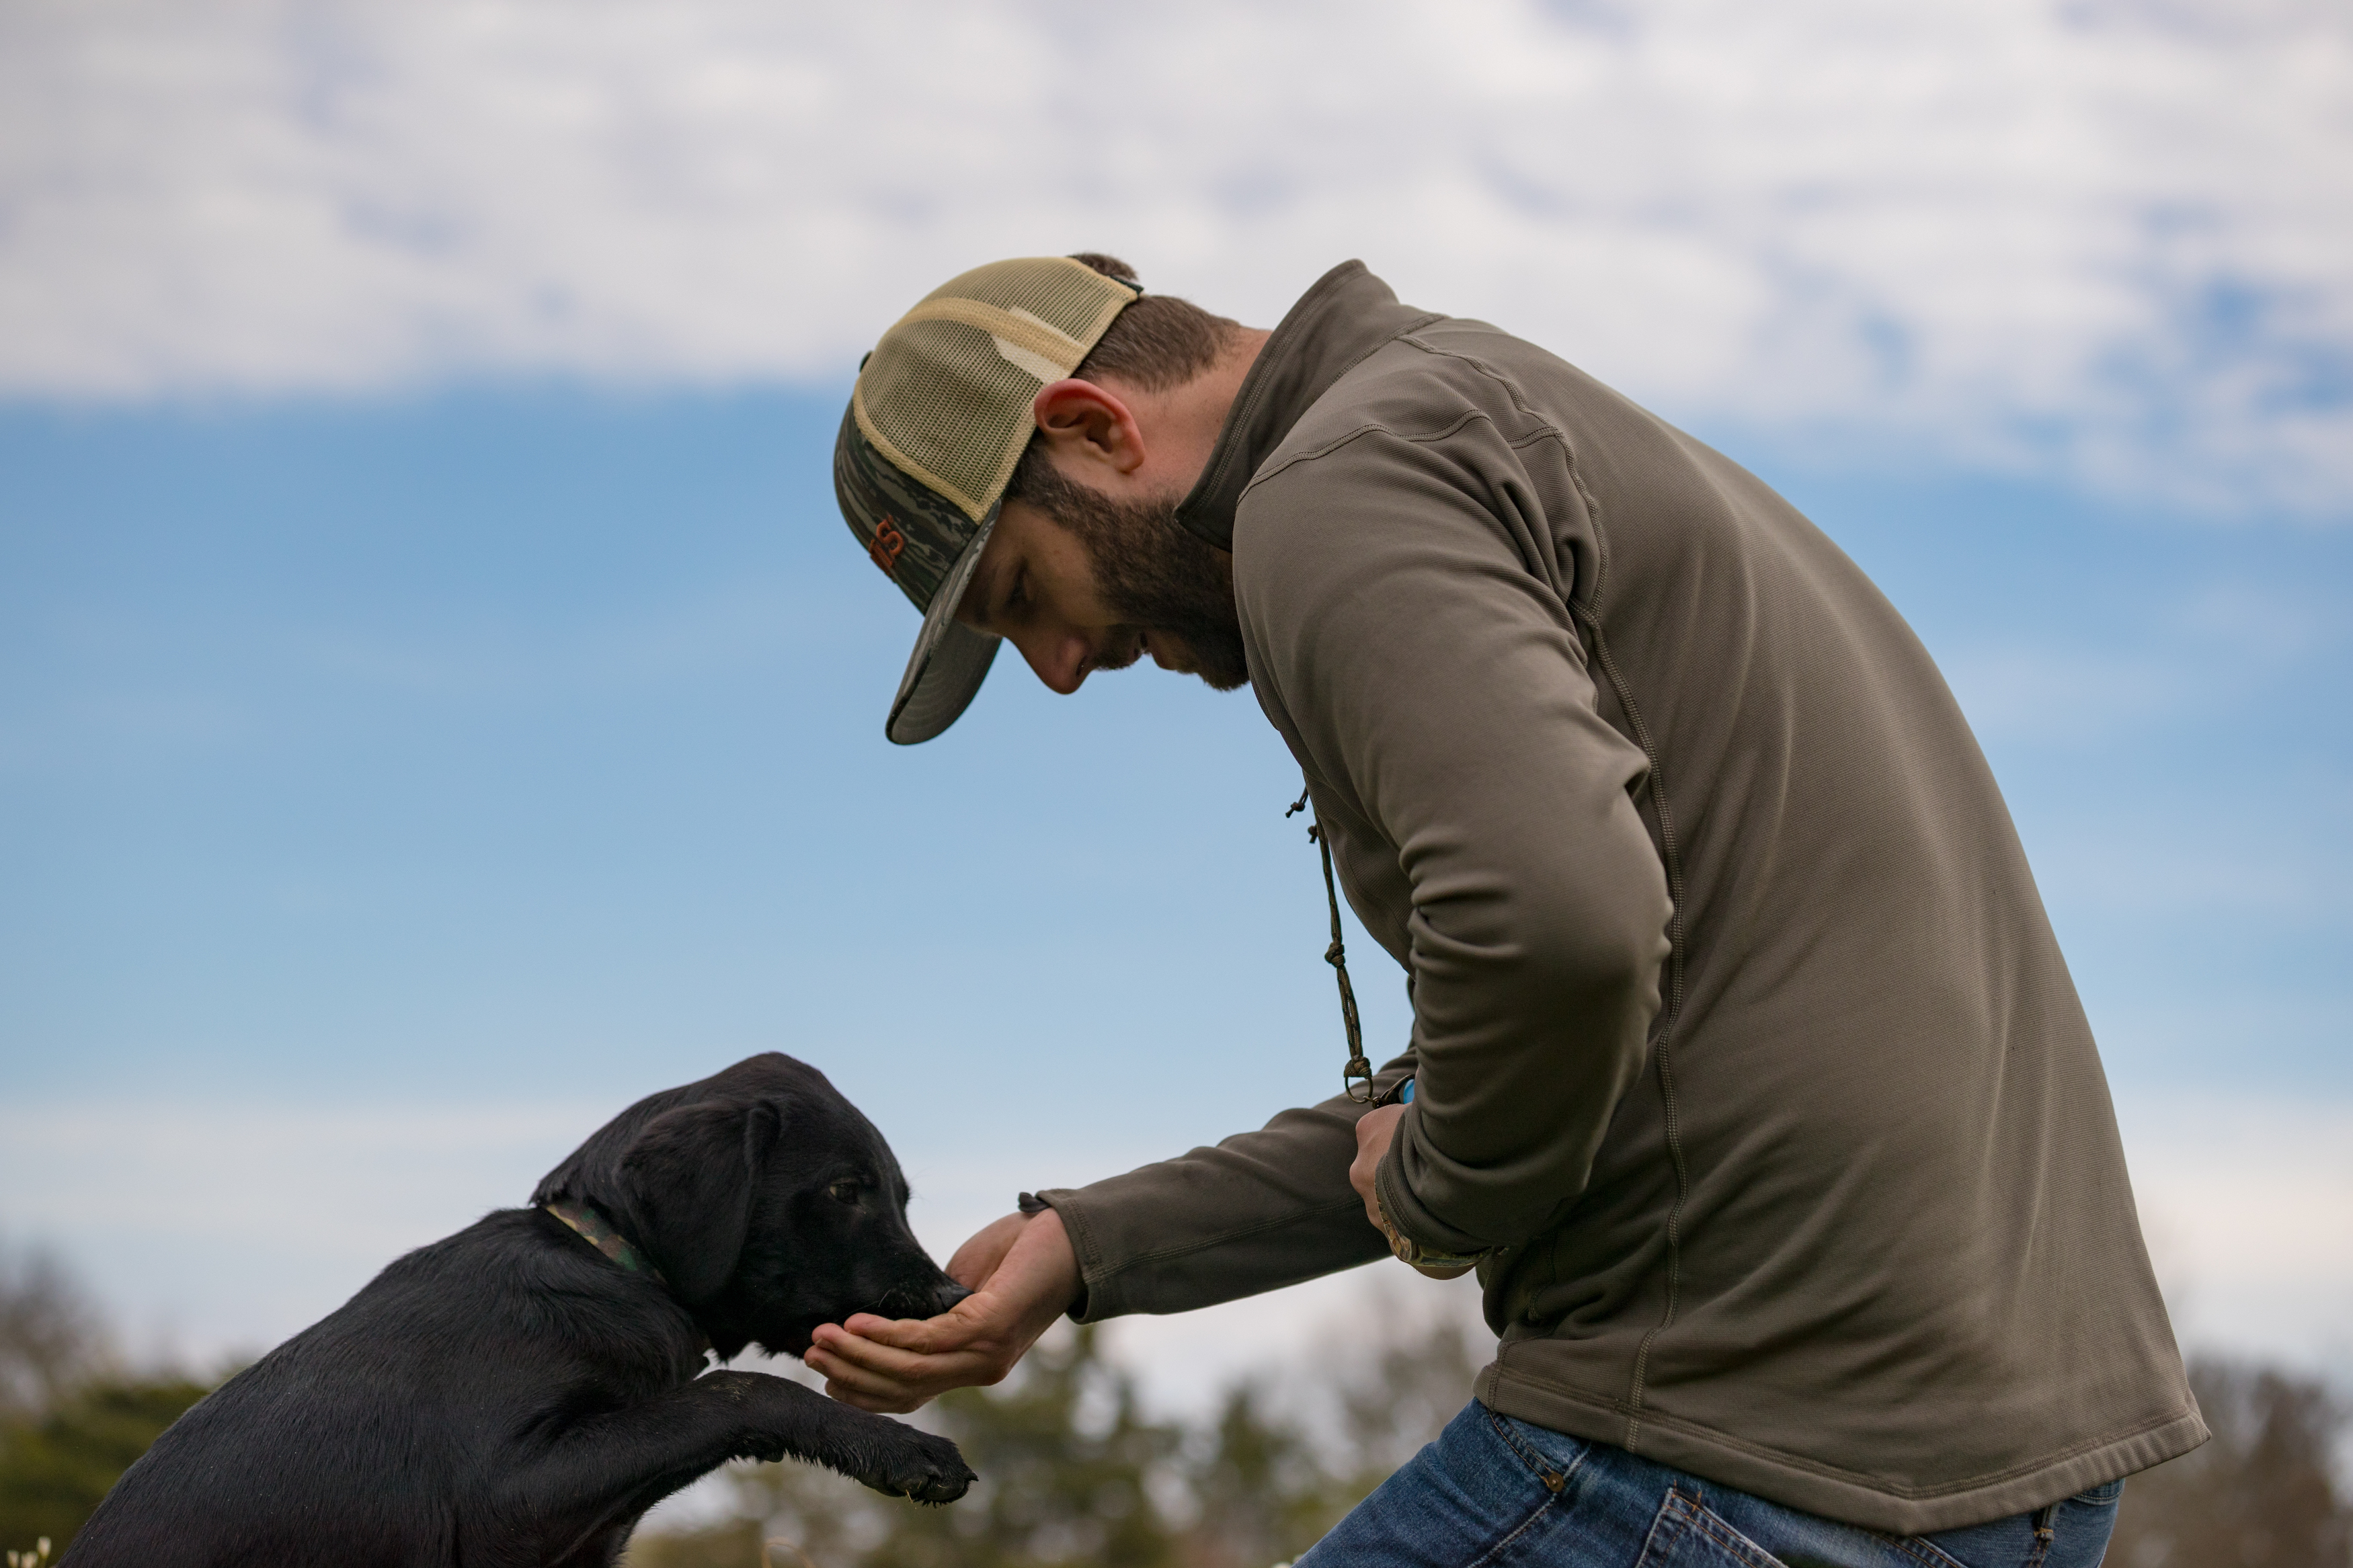 How to train a duck dog puppy